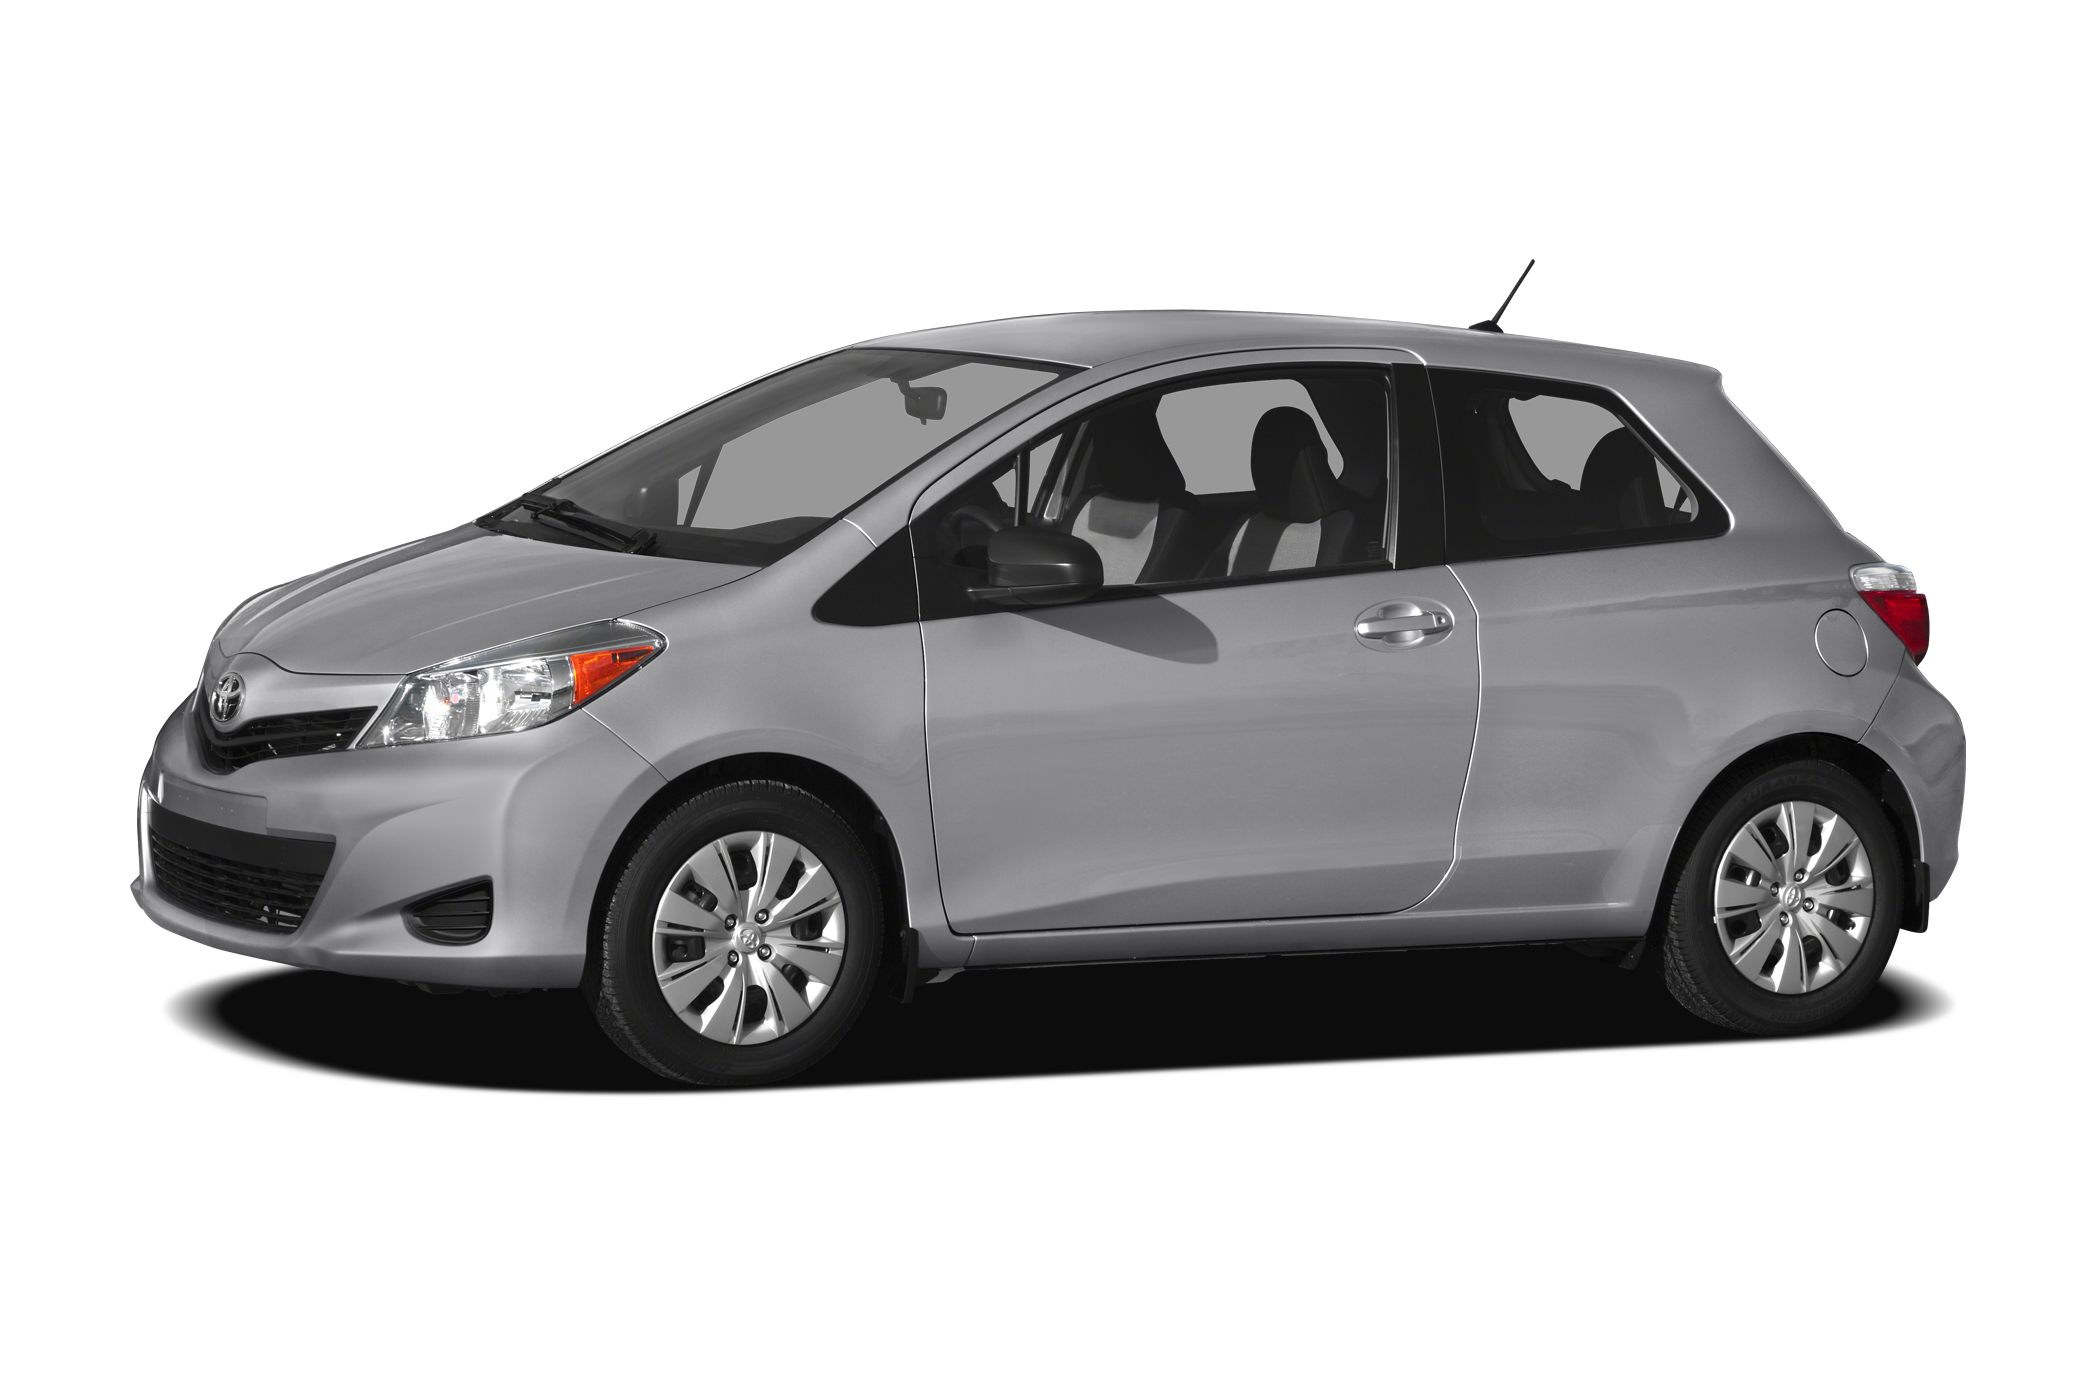 2012 Toyota Yaris L Hatchback for sale in Pueblo for $10,995 with 54,704 miles.